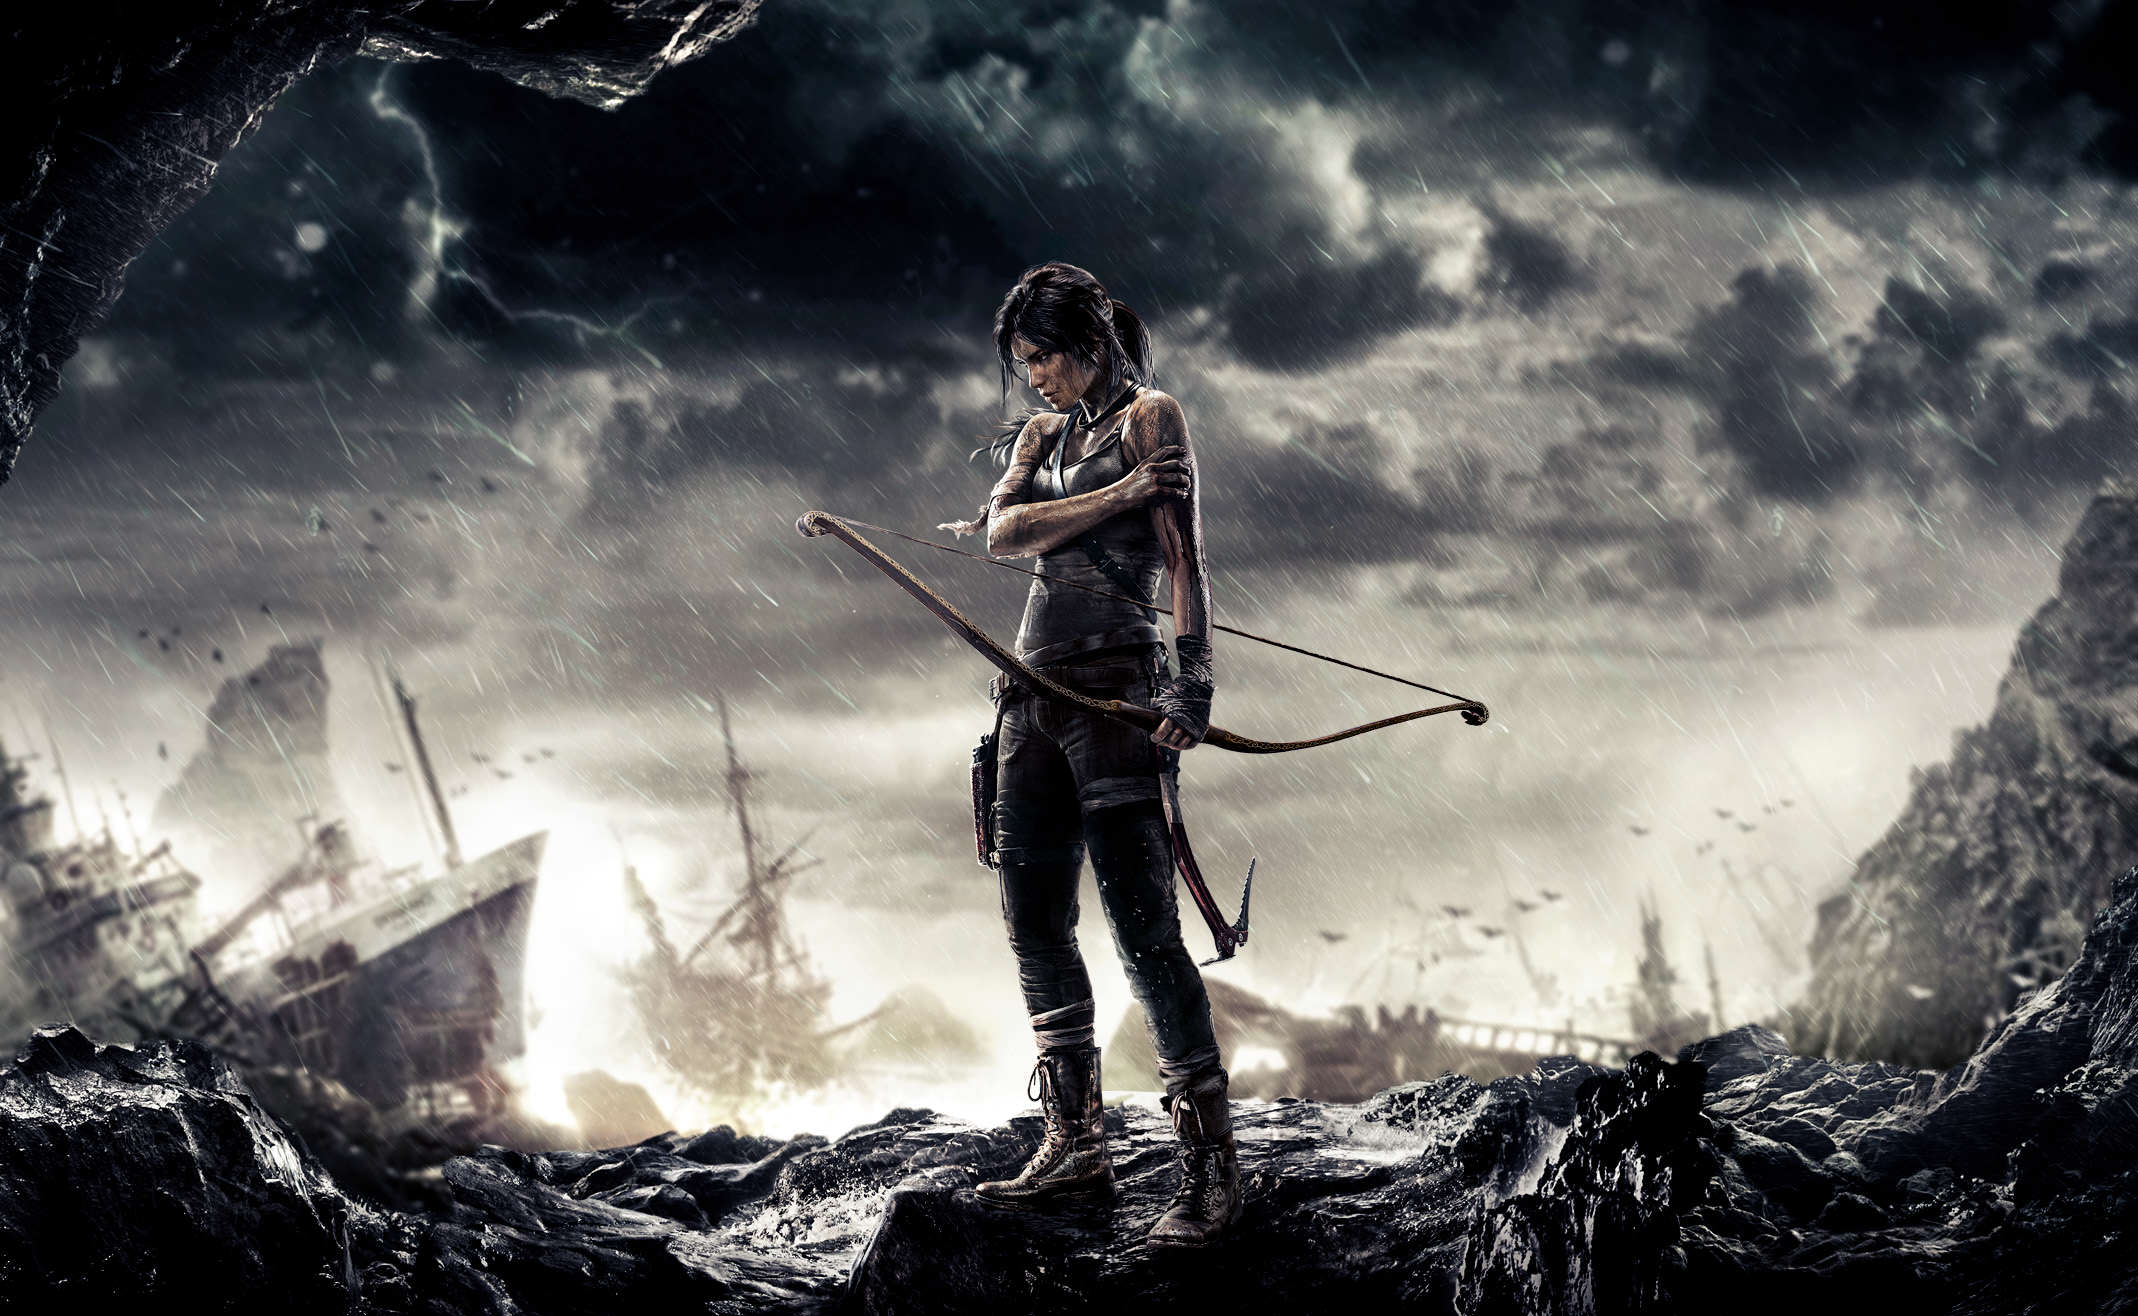 Tomb Raider Movie Director Discusses Plans For Reboot tomb raider wide high definition wallpaper for desktop background